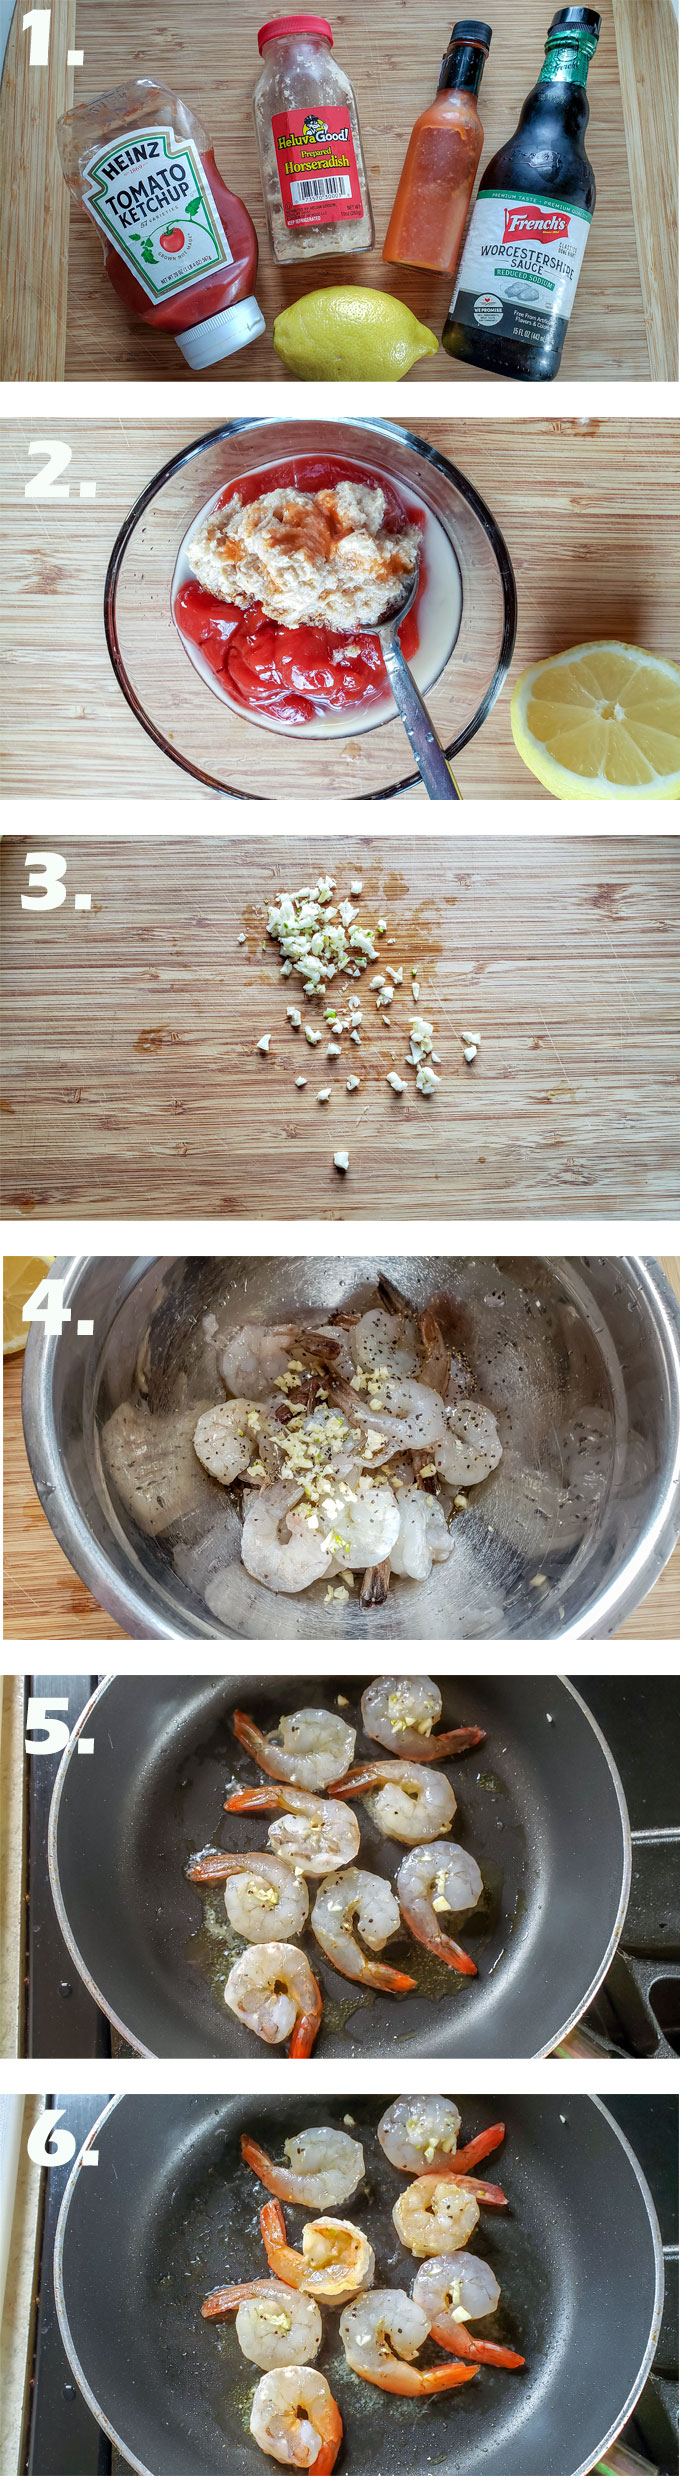 how to make cocktail sauce process photo collage